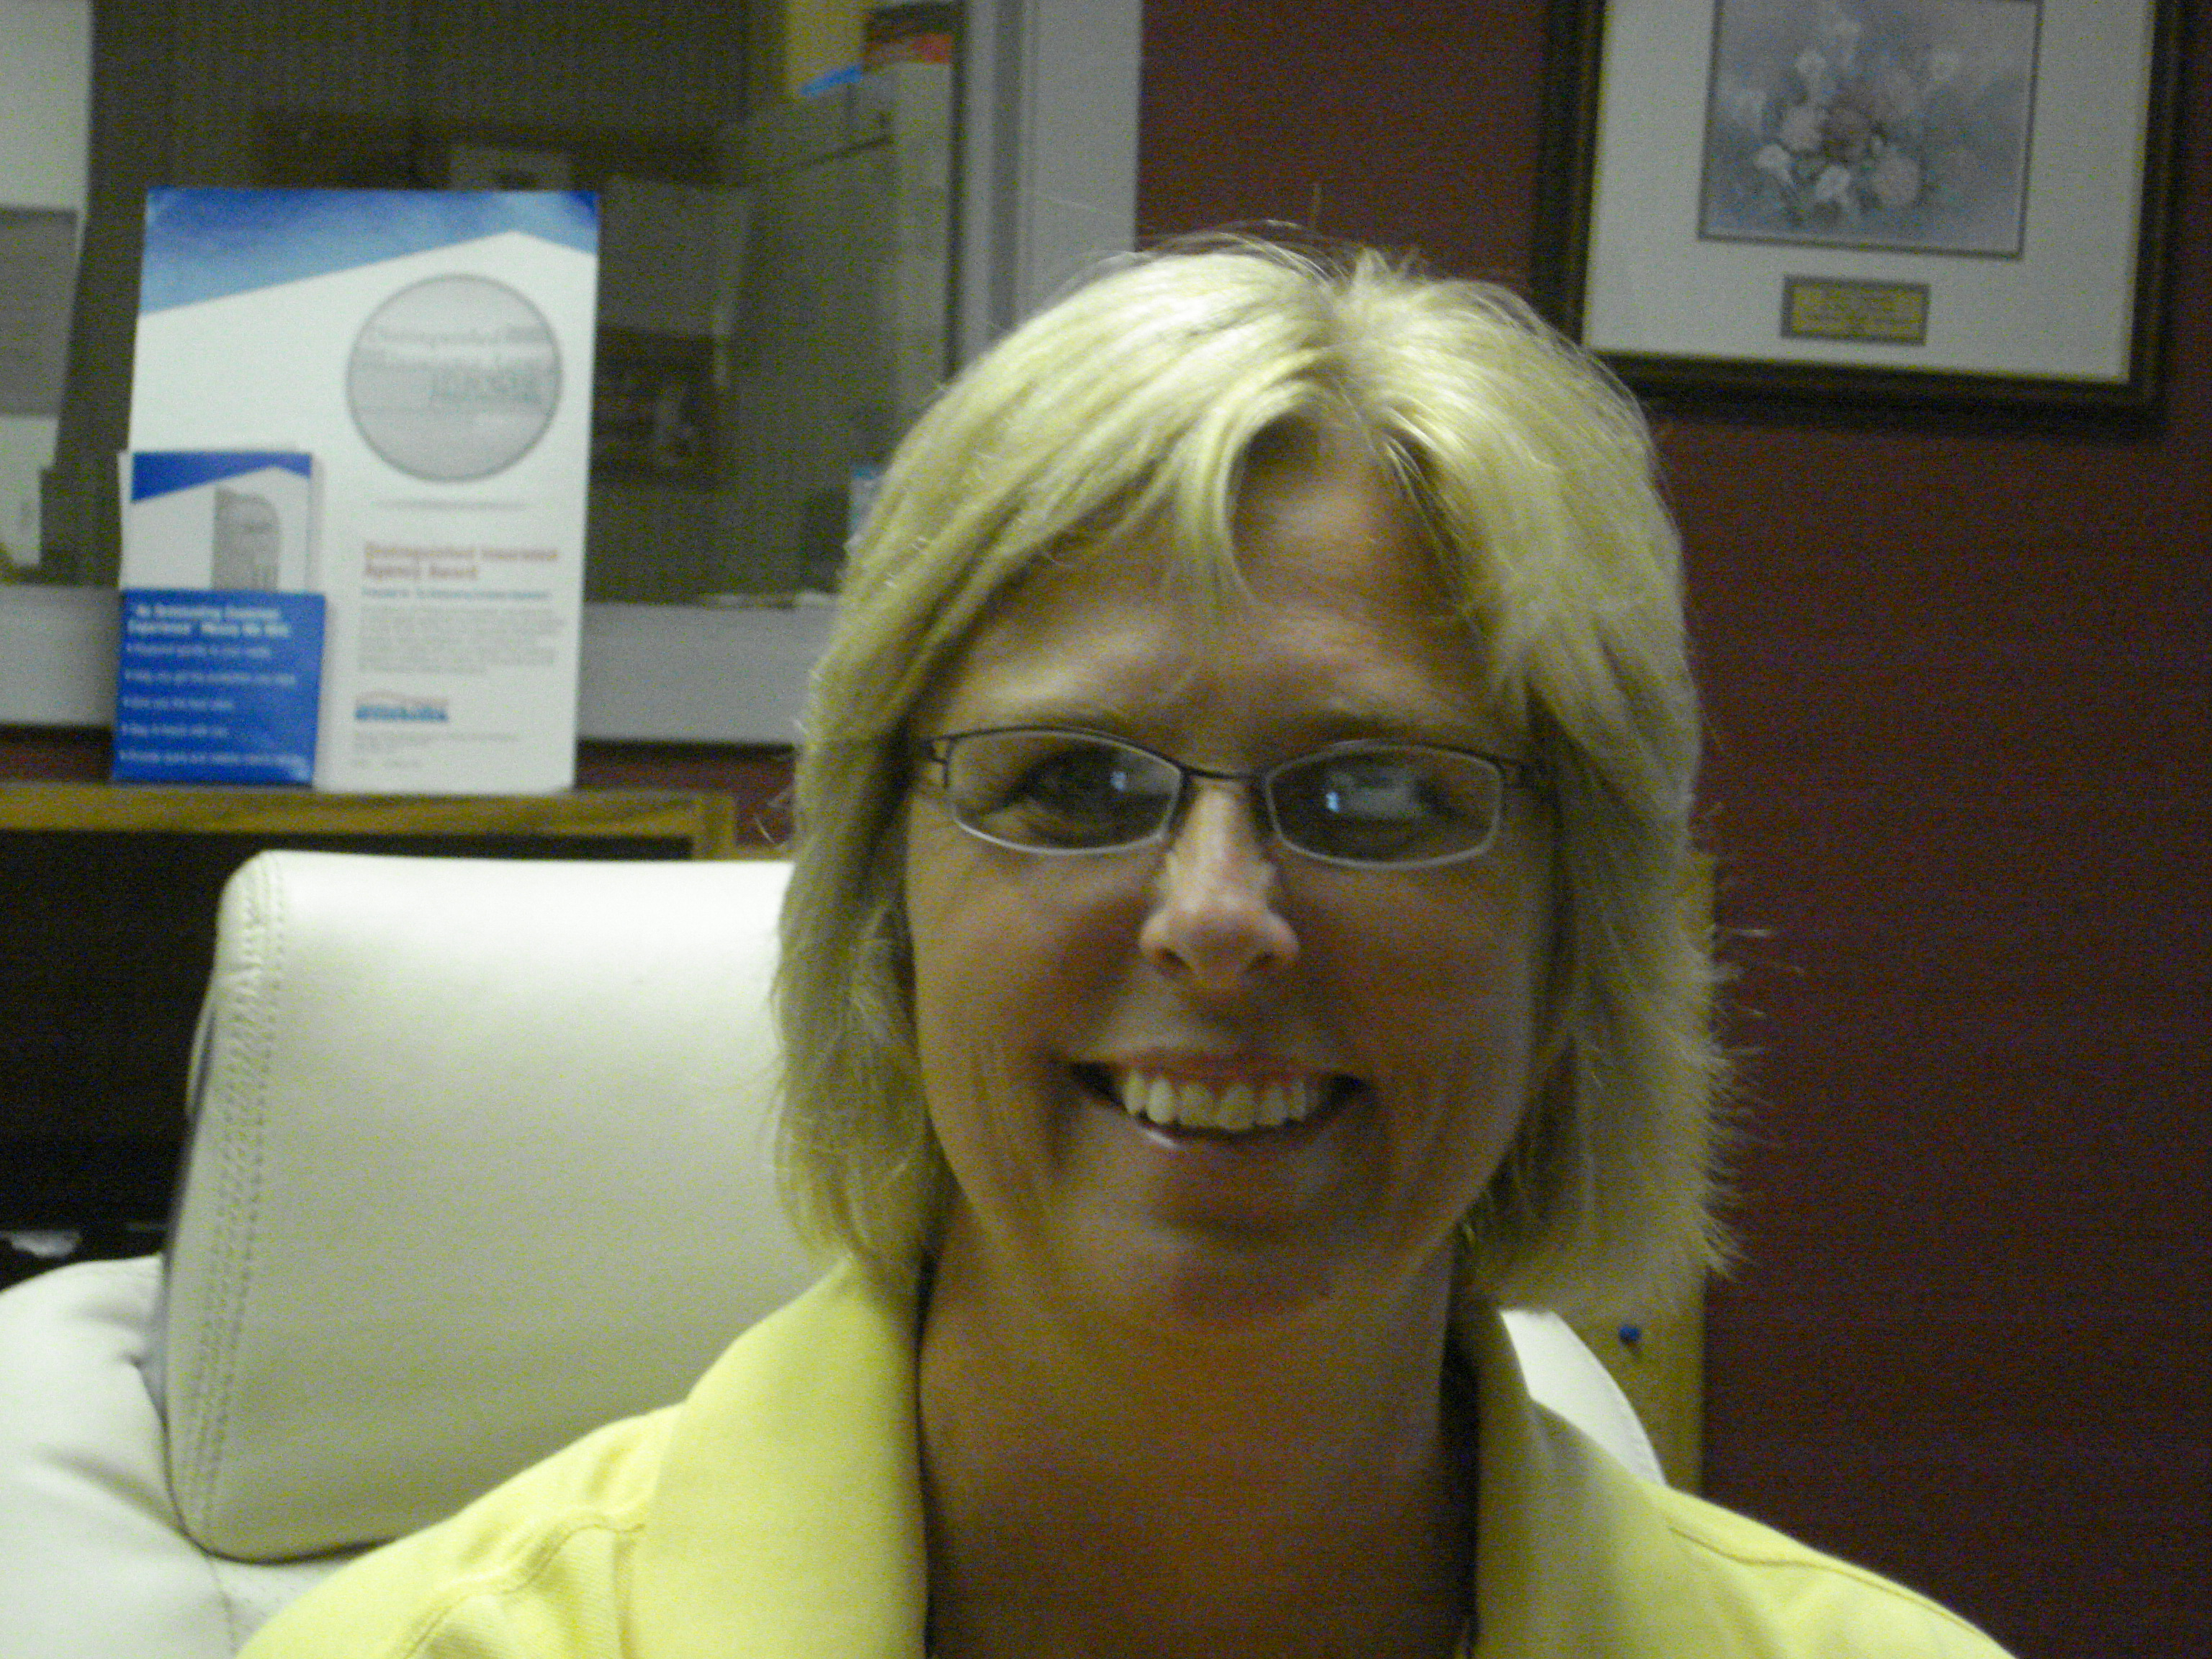 Waverly, Iowa American Family Insurance agent Kristi Demuth says she sees the healthcare reform question from two views: the provider and the receiver. Neither gives a clear answer. In fact, the opposite is true. It is complicated. Photo by Christopher Brinckerhoff.